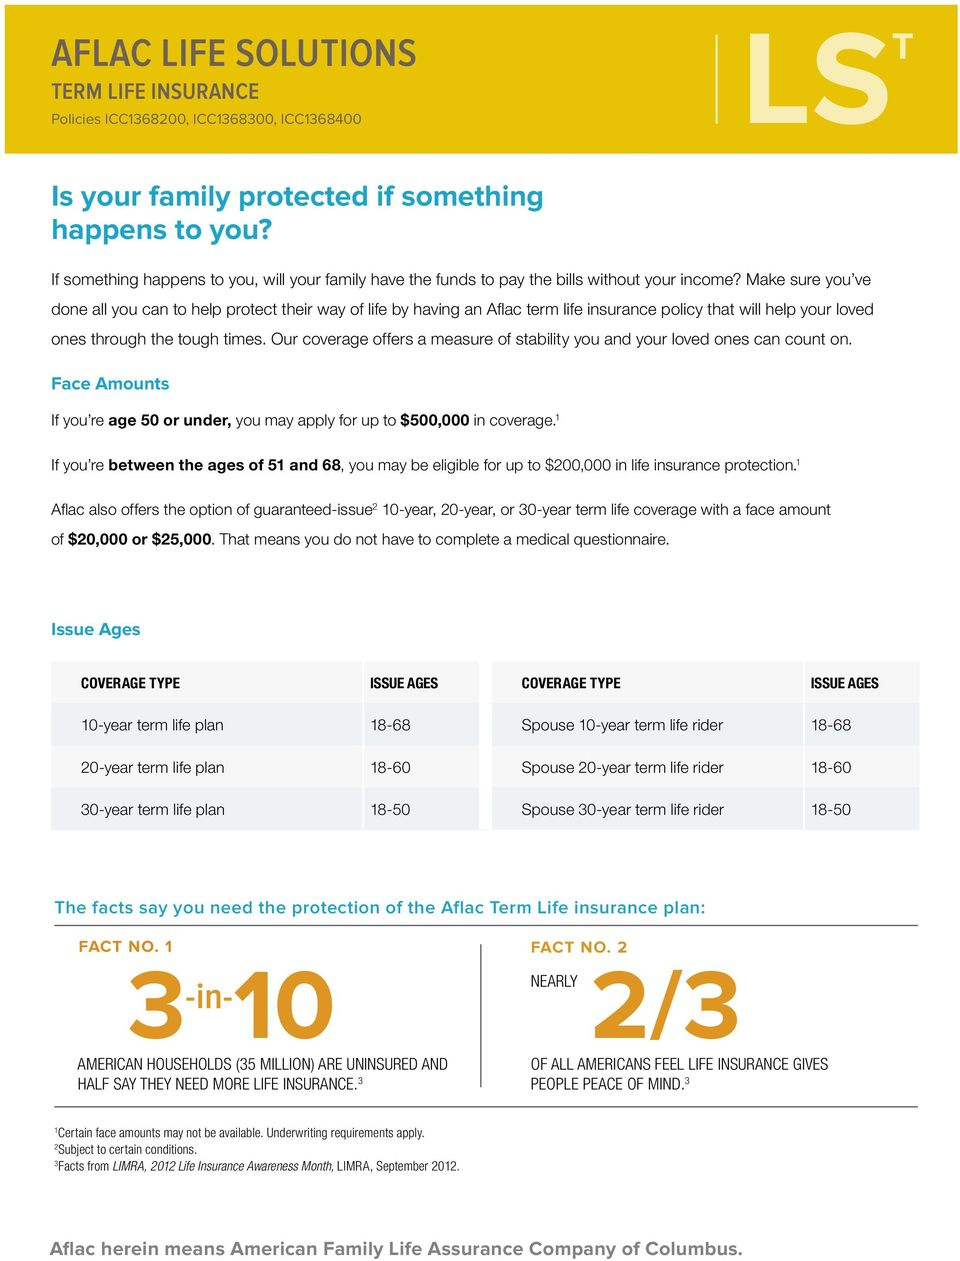 Make sure you ve done all you can to help protect their way of life by having an Aflac term life insurance policy that will help your loved ones through the tough times.